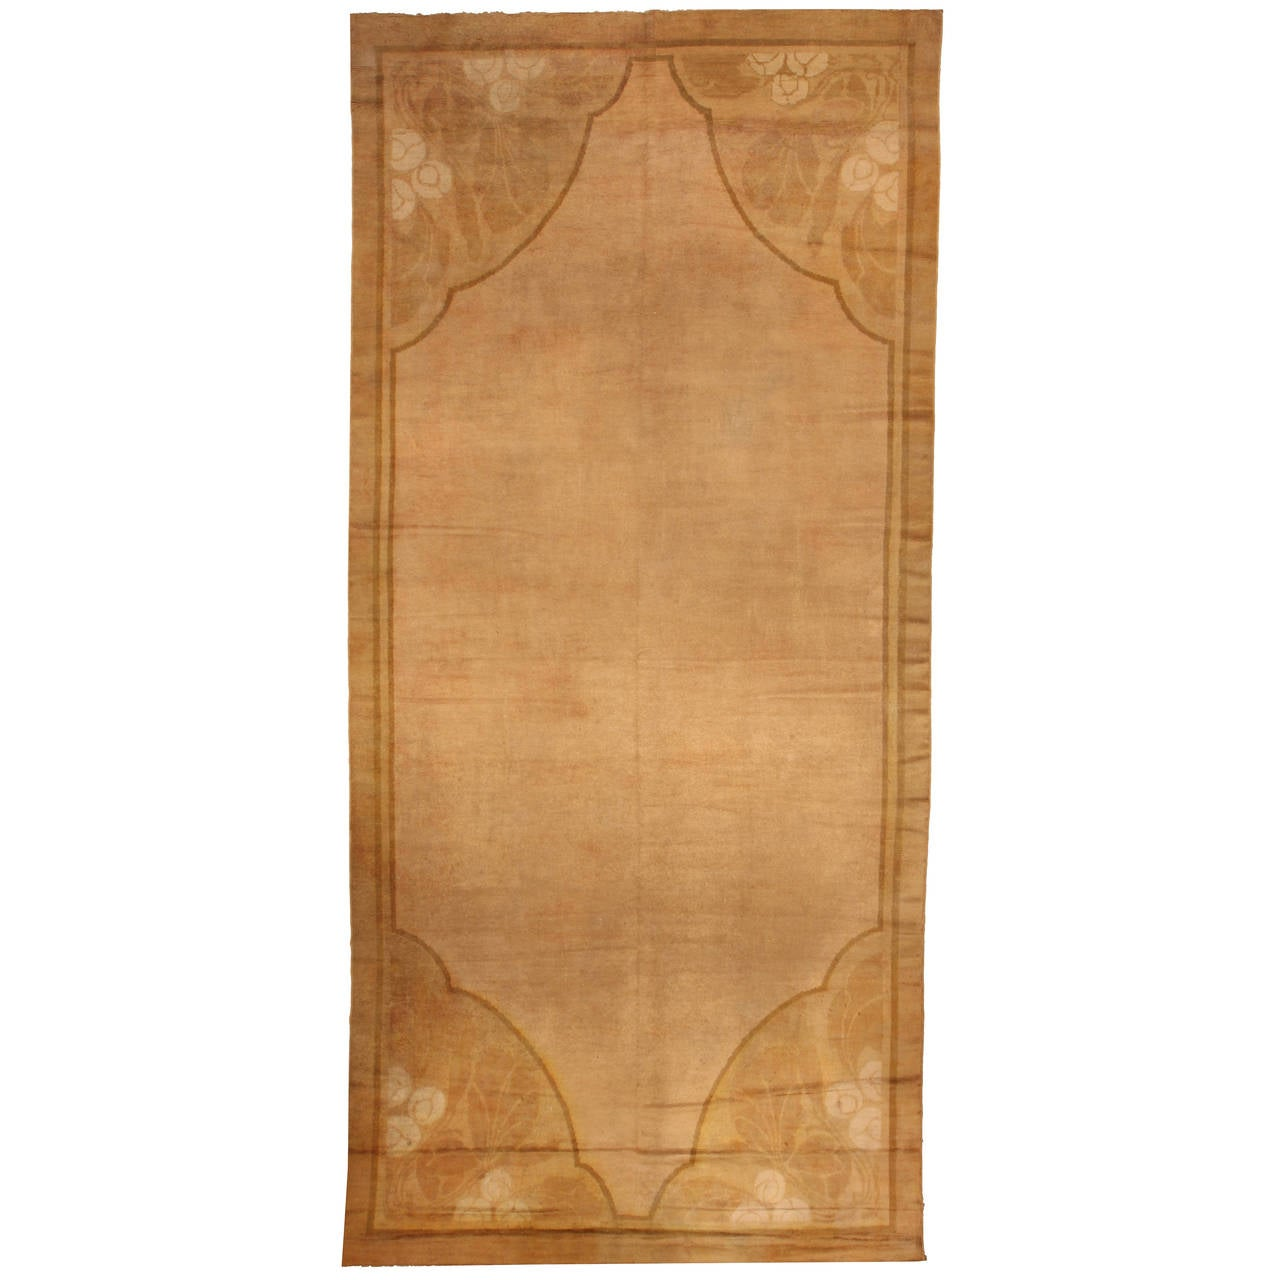 Antique Arts And Crafts Rugs: Antique Art And Crafts Rug For Sale At 1stdibs